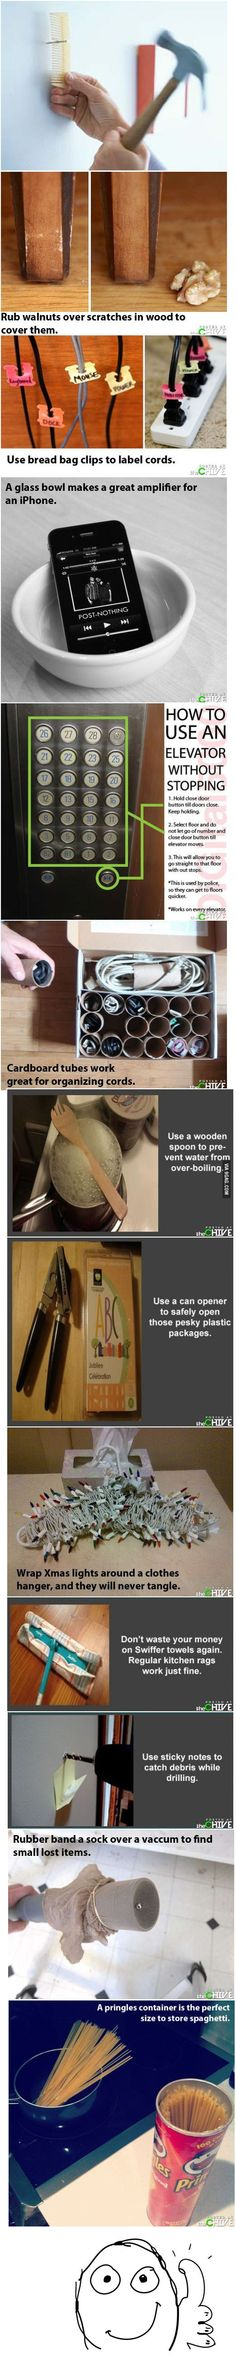 Amazing and useful everyday hacks. Most I have not come across on Pinterest! Sounds legit! - 9GAG